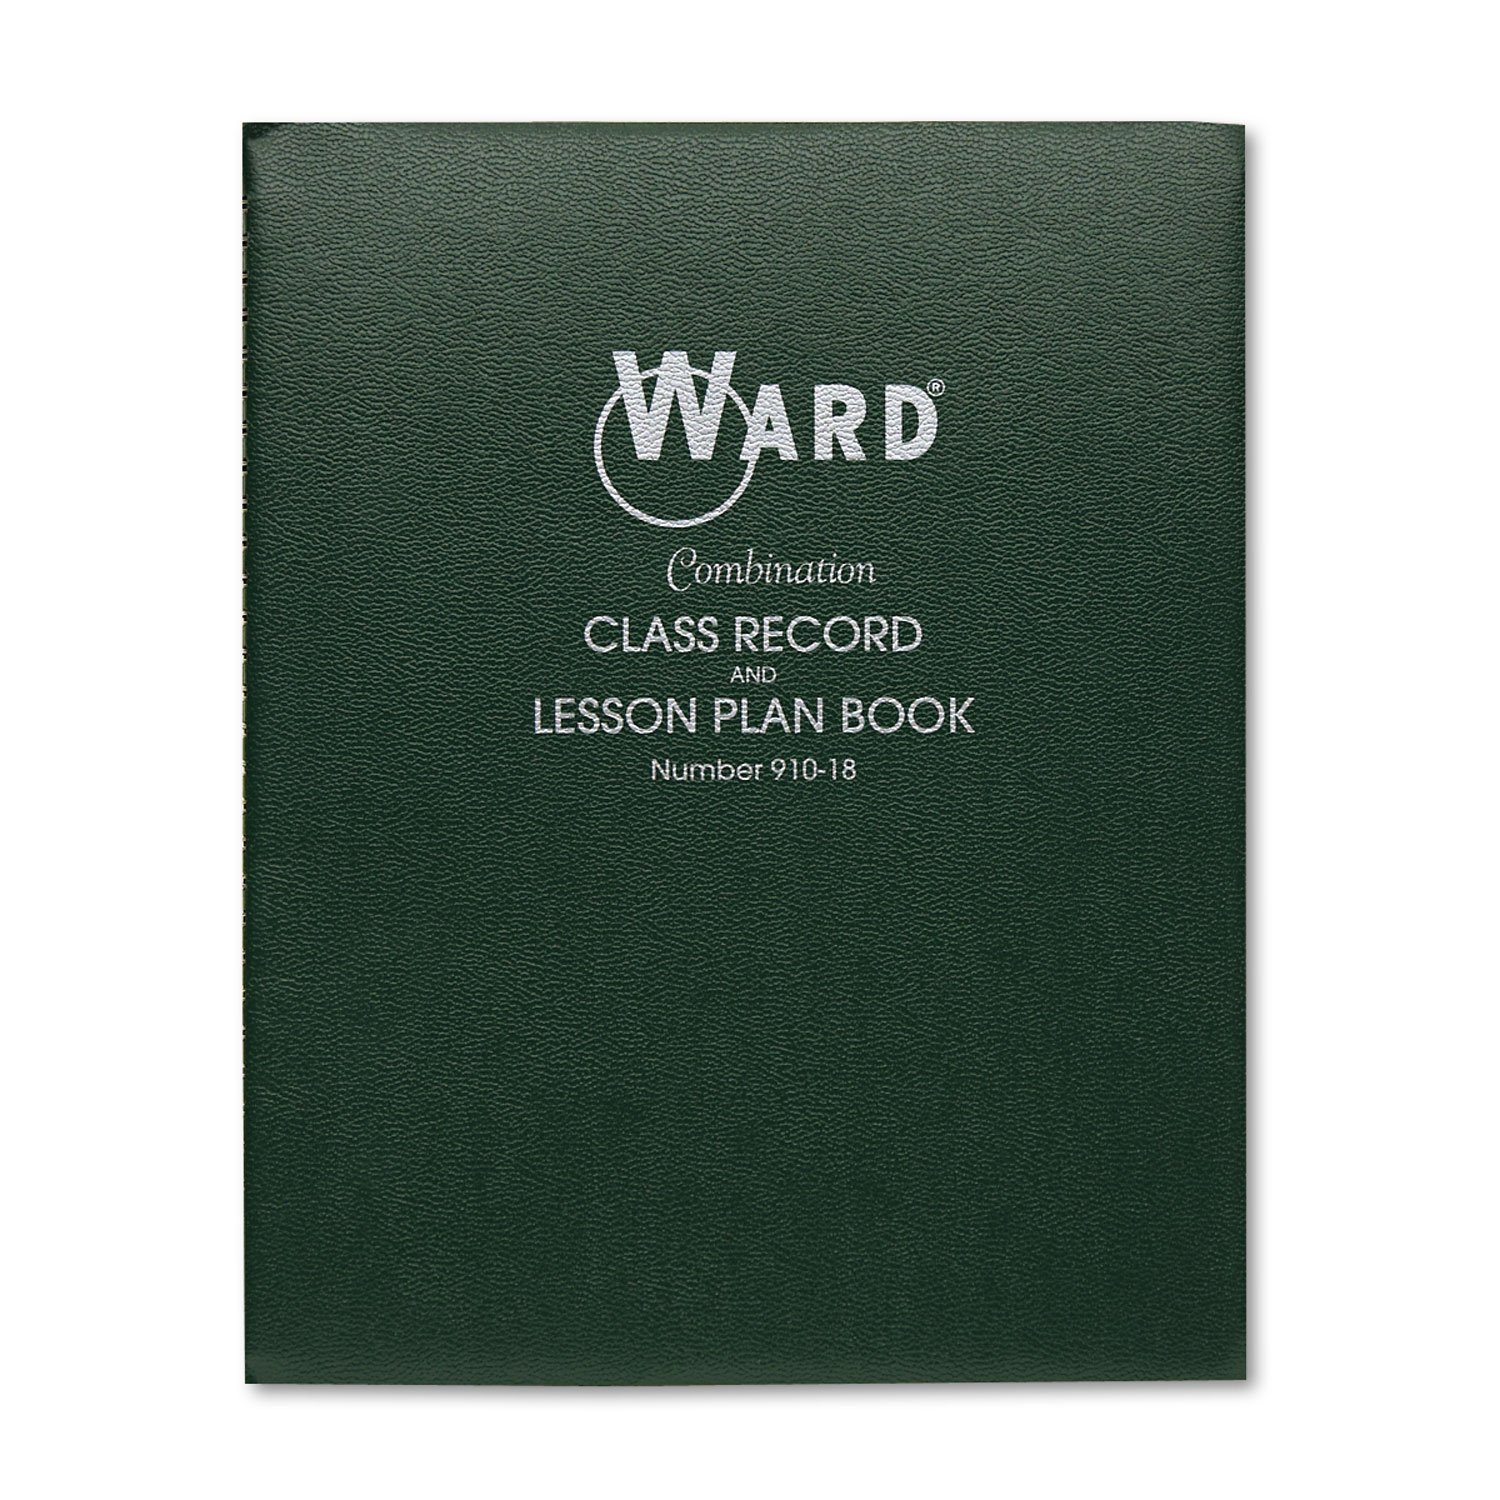 HUB91018 - Ward Combination Record amp;amp; Plan Book